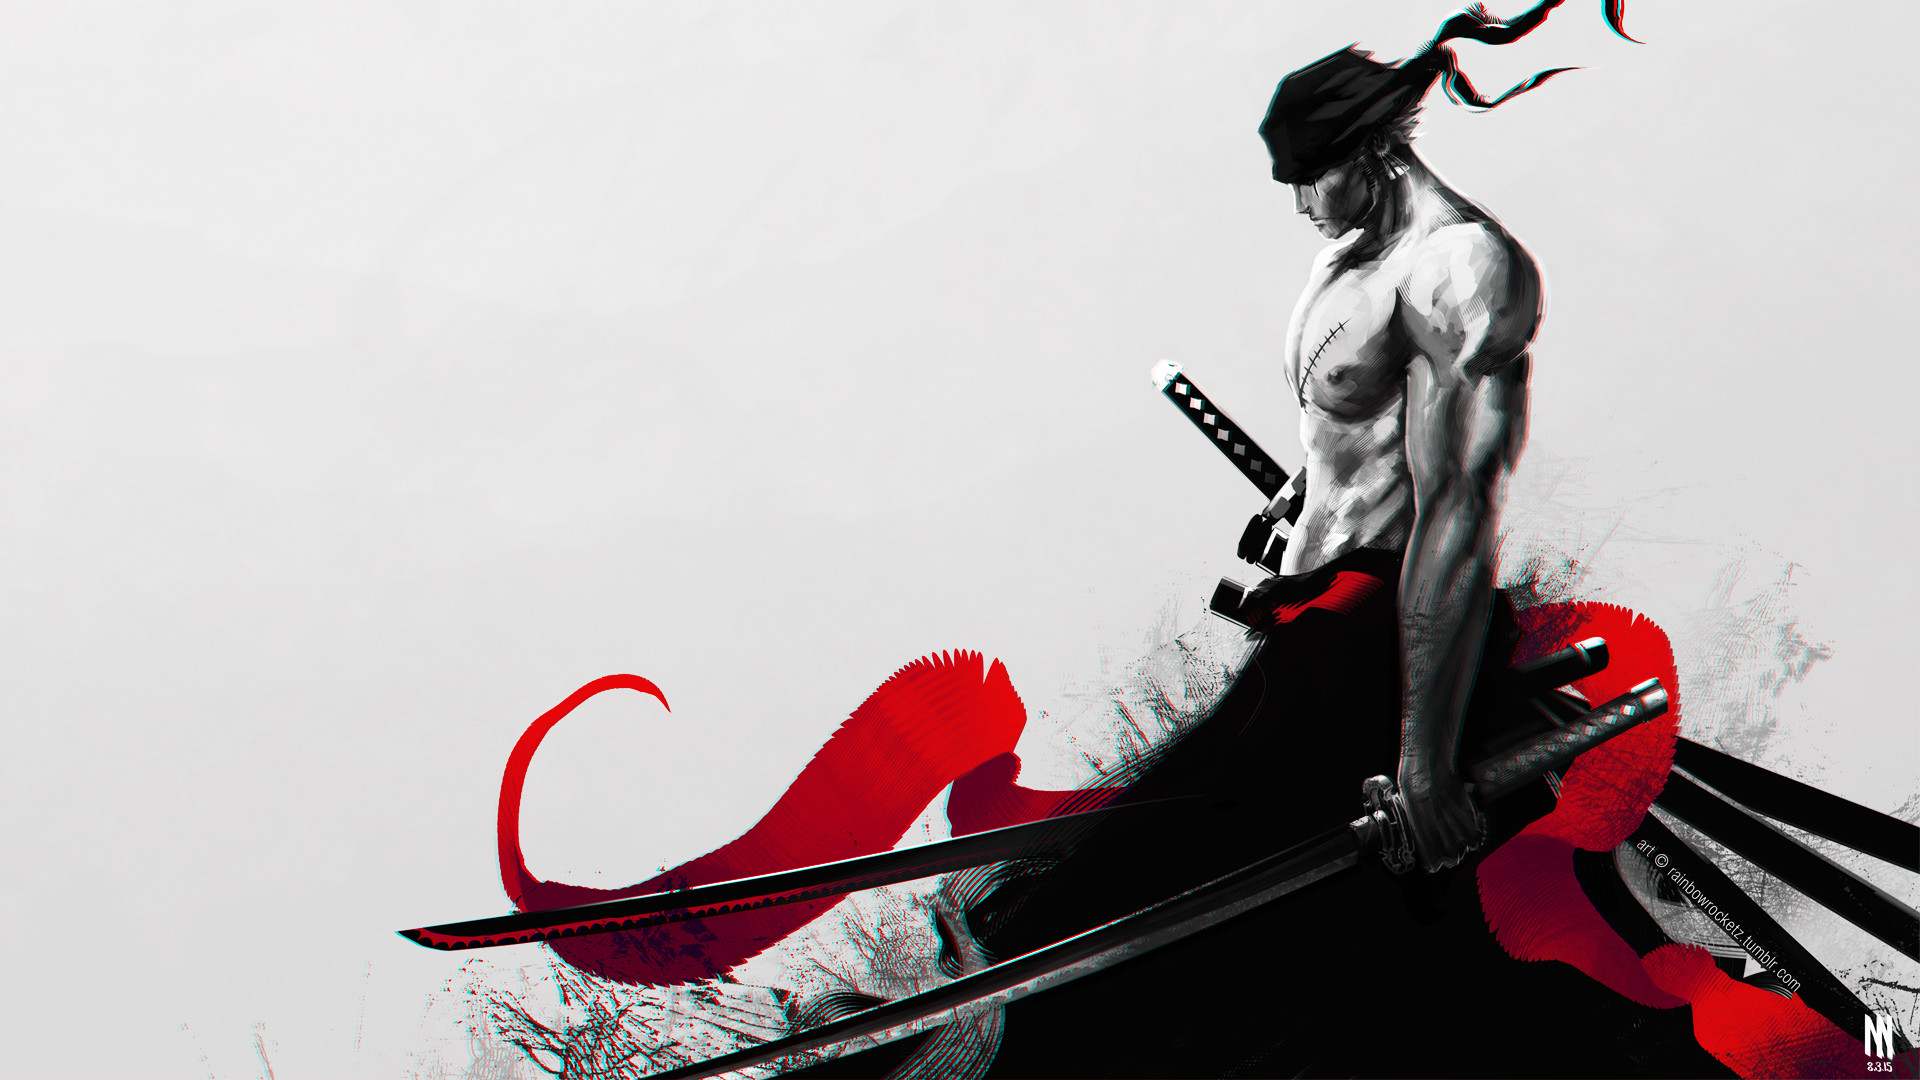 Black And White Iphone Wallpaper Zoro Wallpaper Hd 64 Images